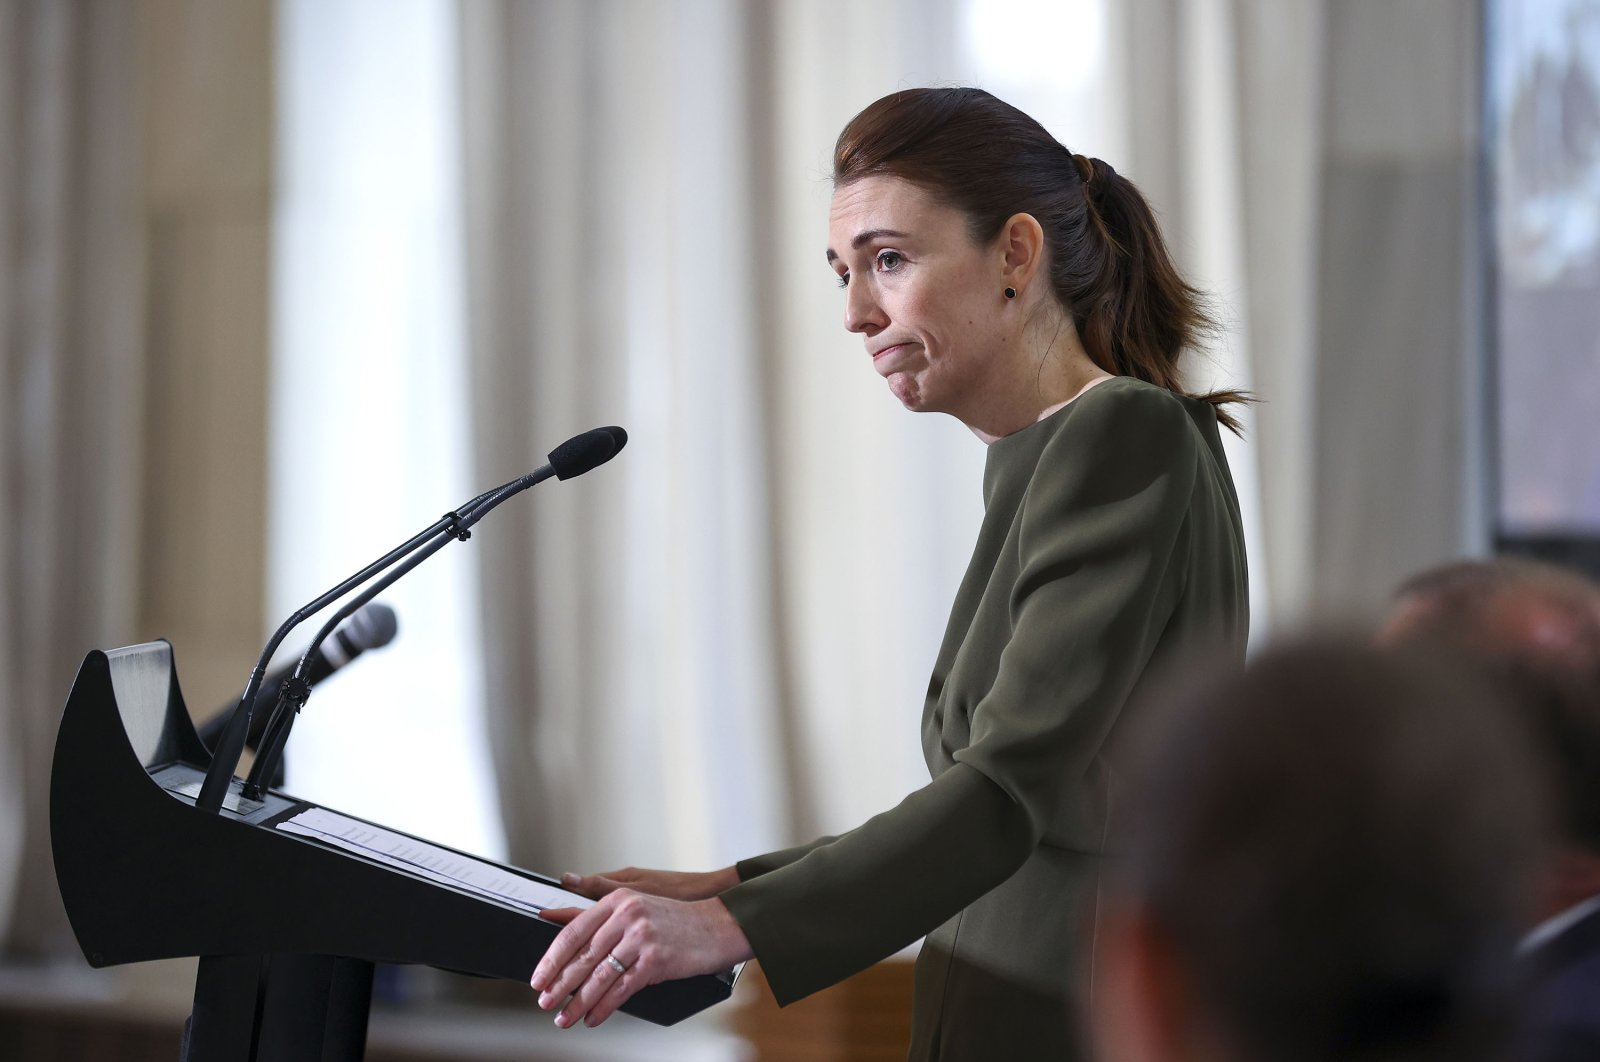 Prime Minister Jacinda Ardern looks on during a media lock-up in Wellington, New Zealand, on Dec. 8, 2020. (Getty Images)